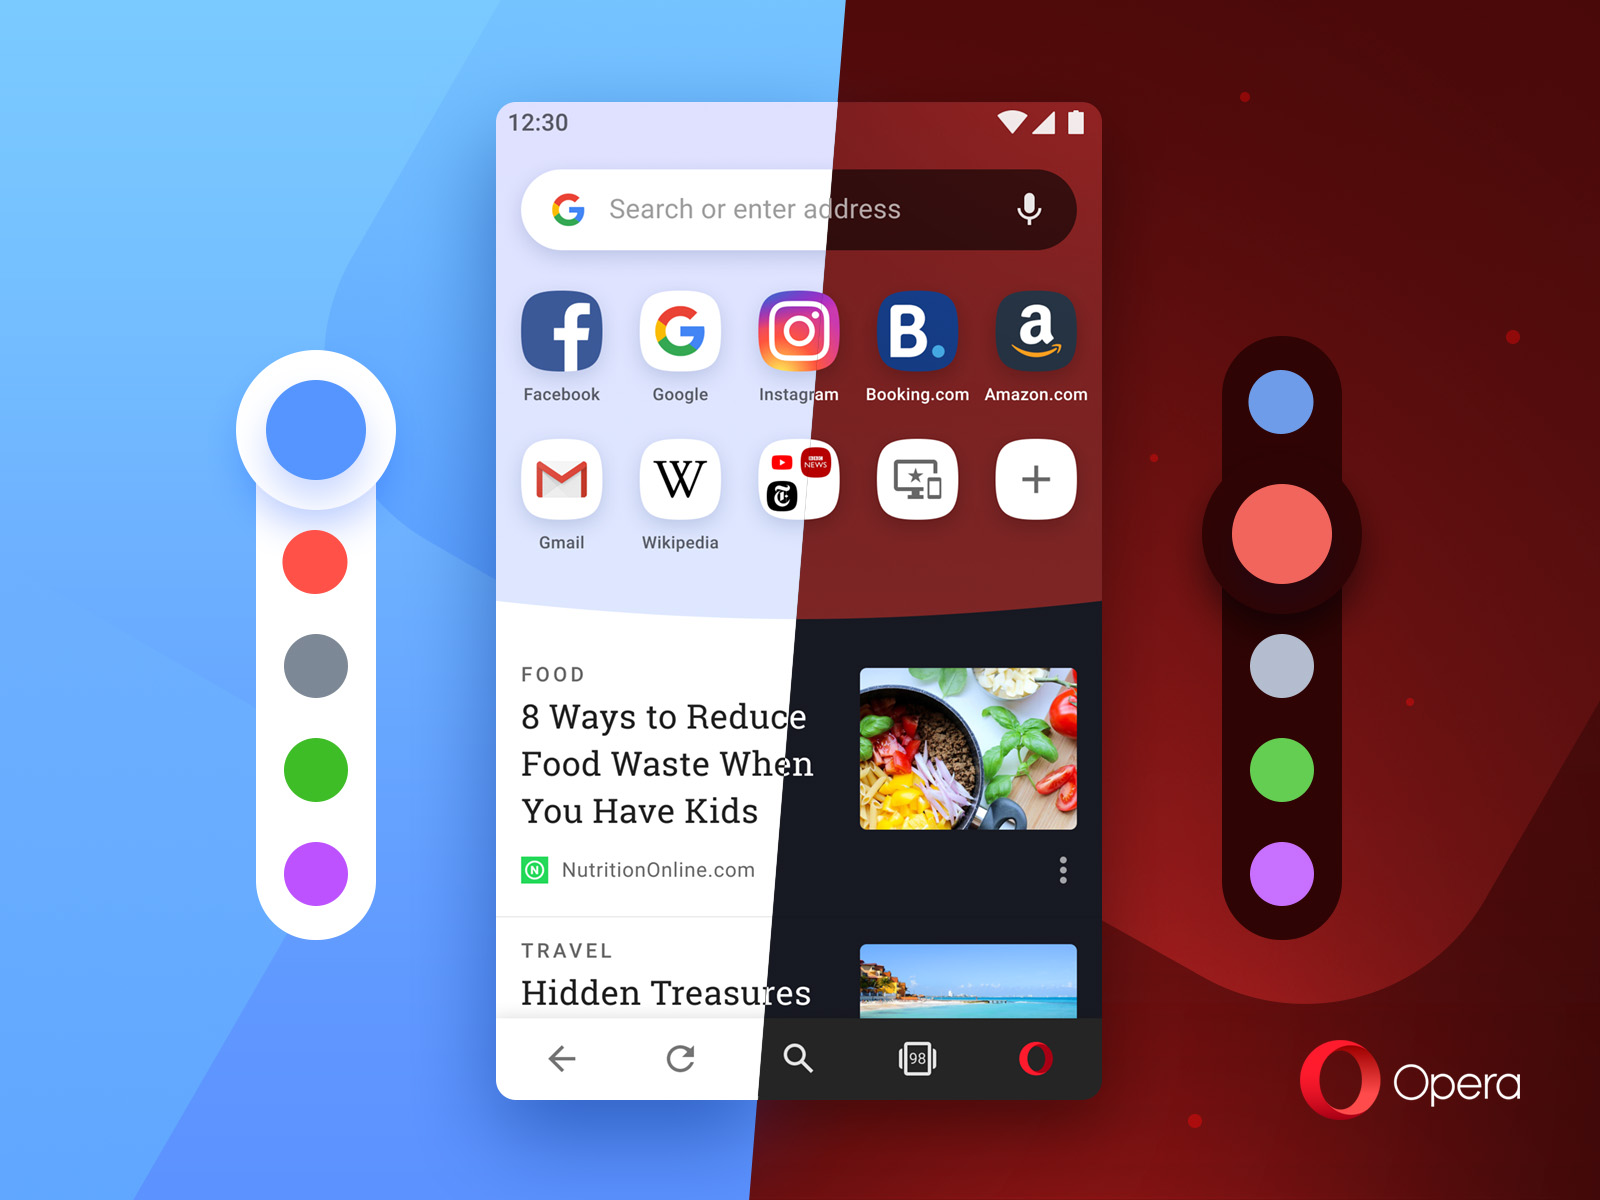 Opera overhauls Android browser with theming support, crypto payments, and more